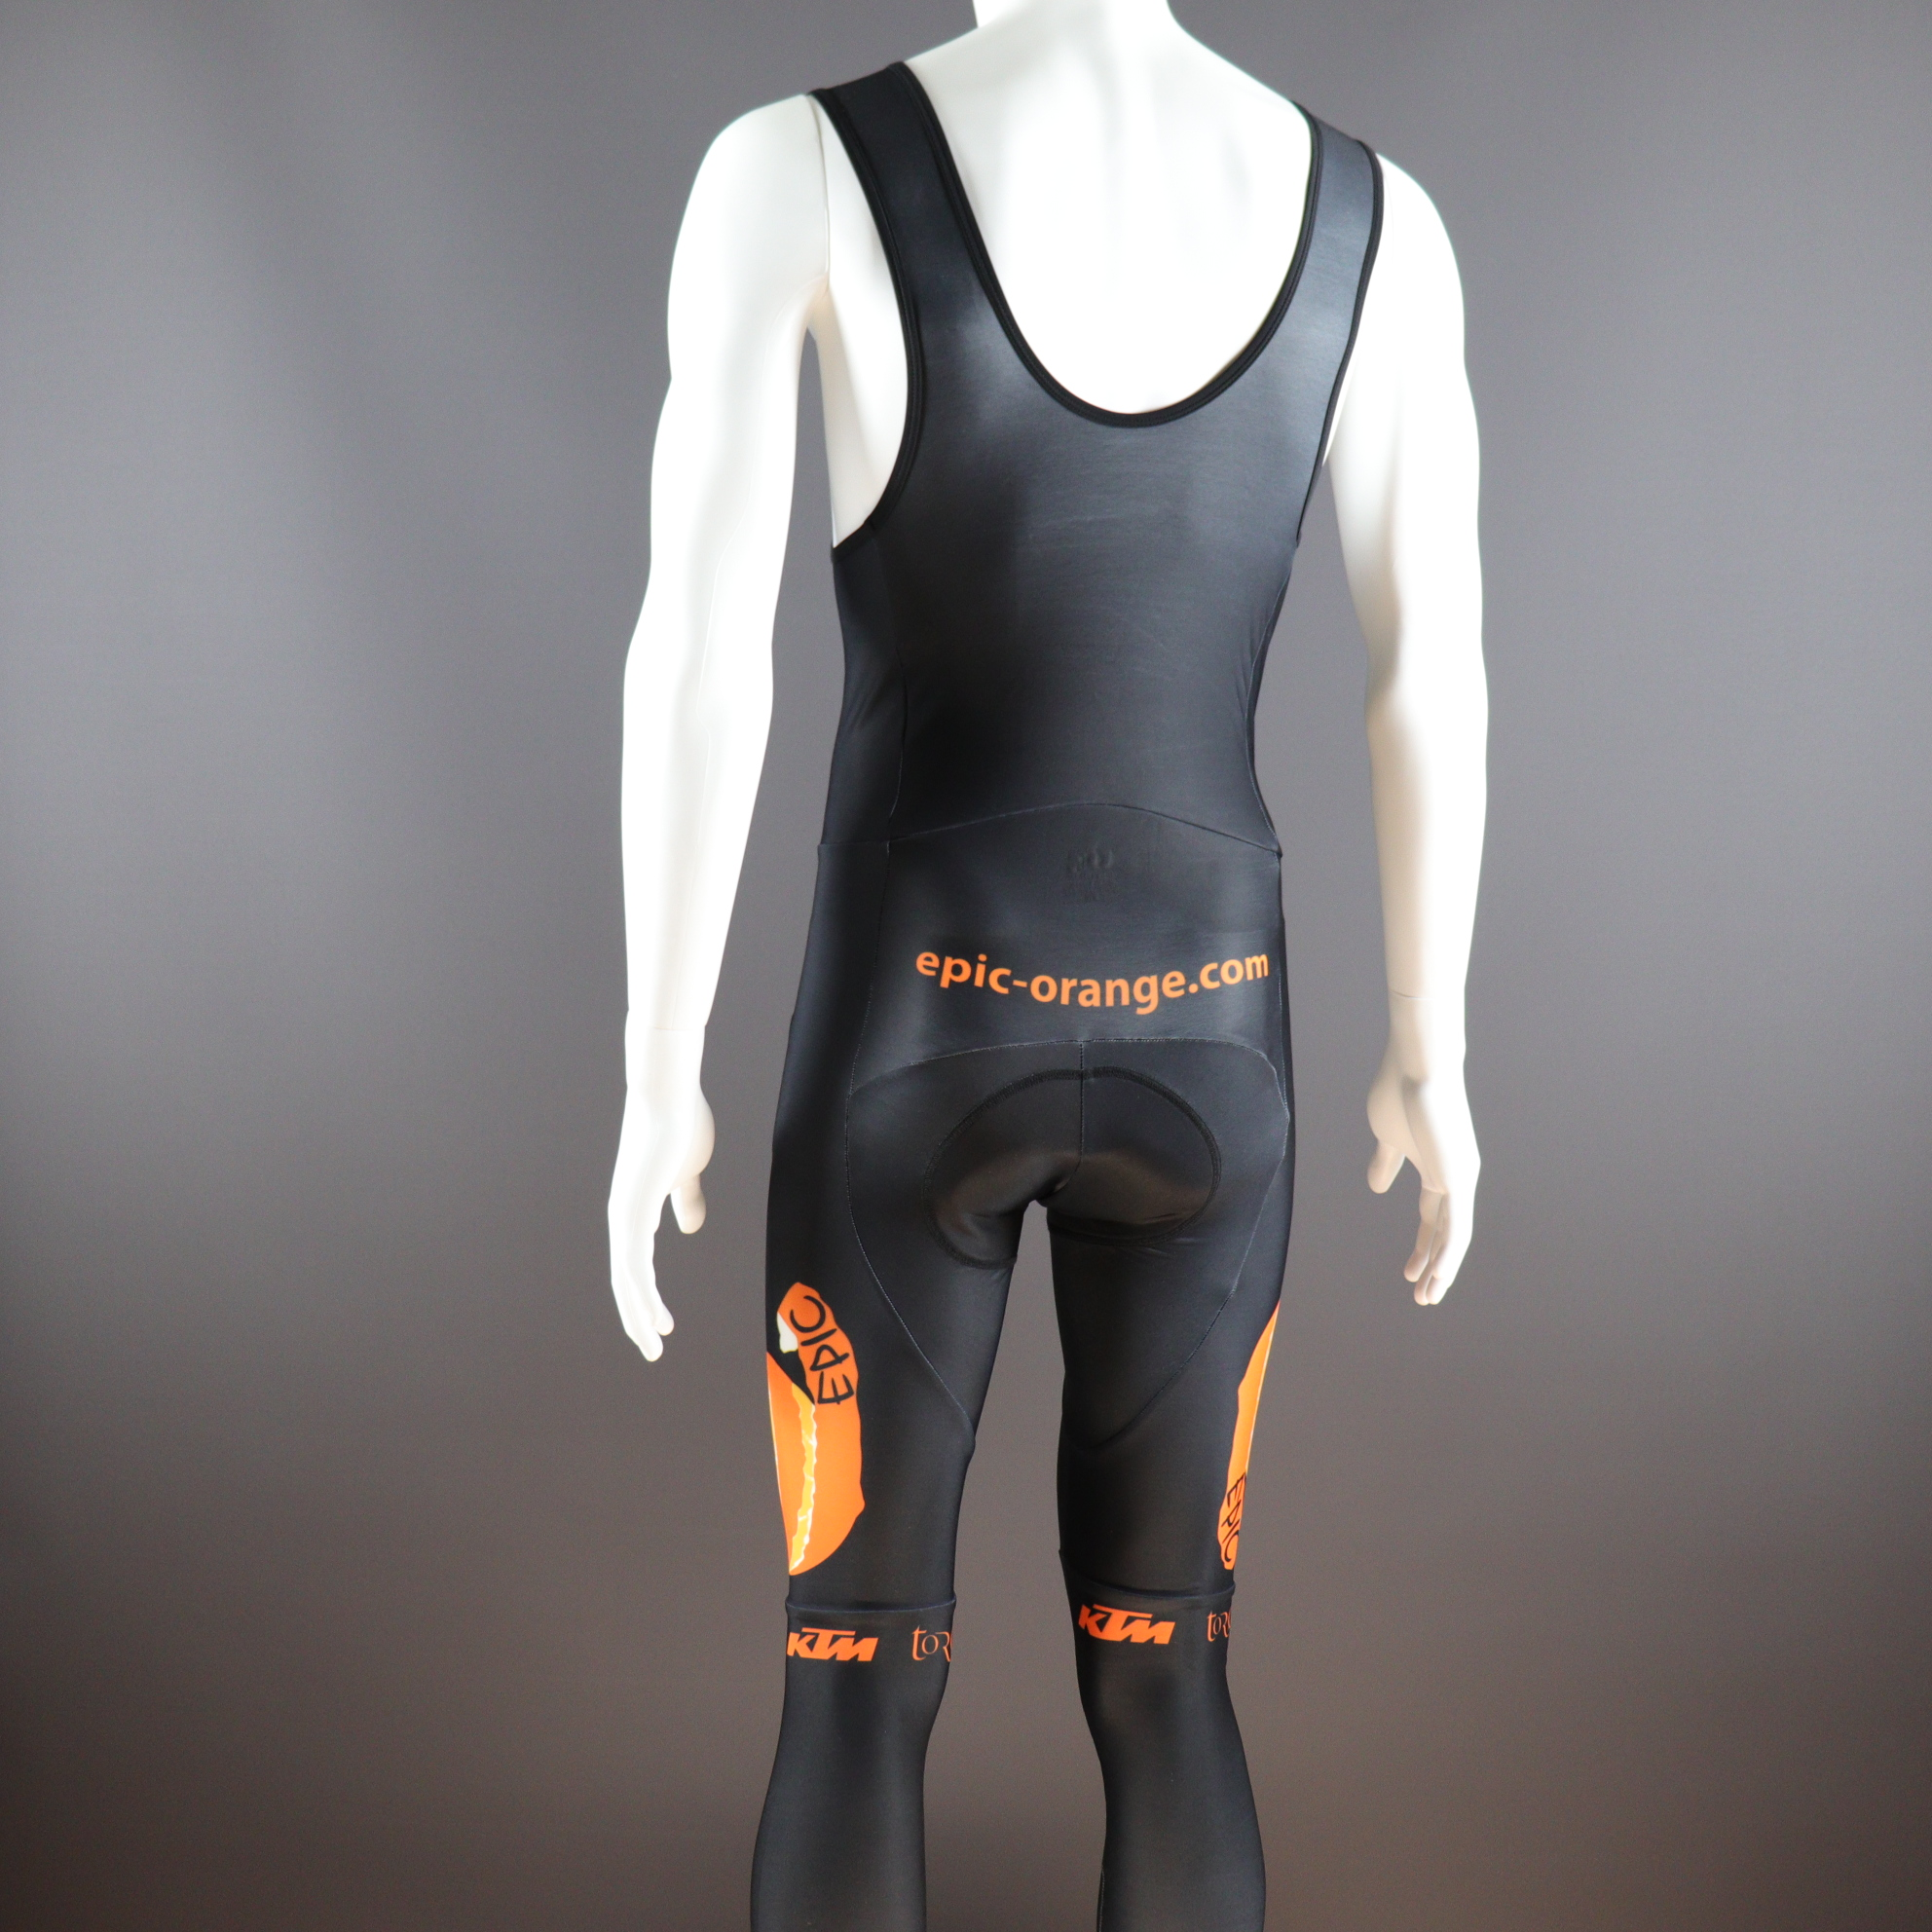 Thermal Race Bib Tights with Coolmax Pad